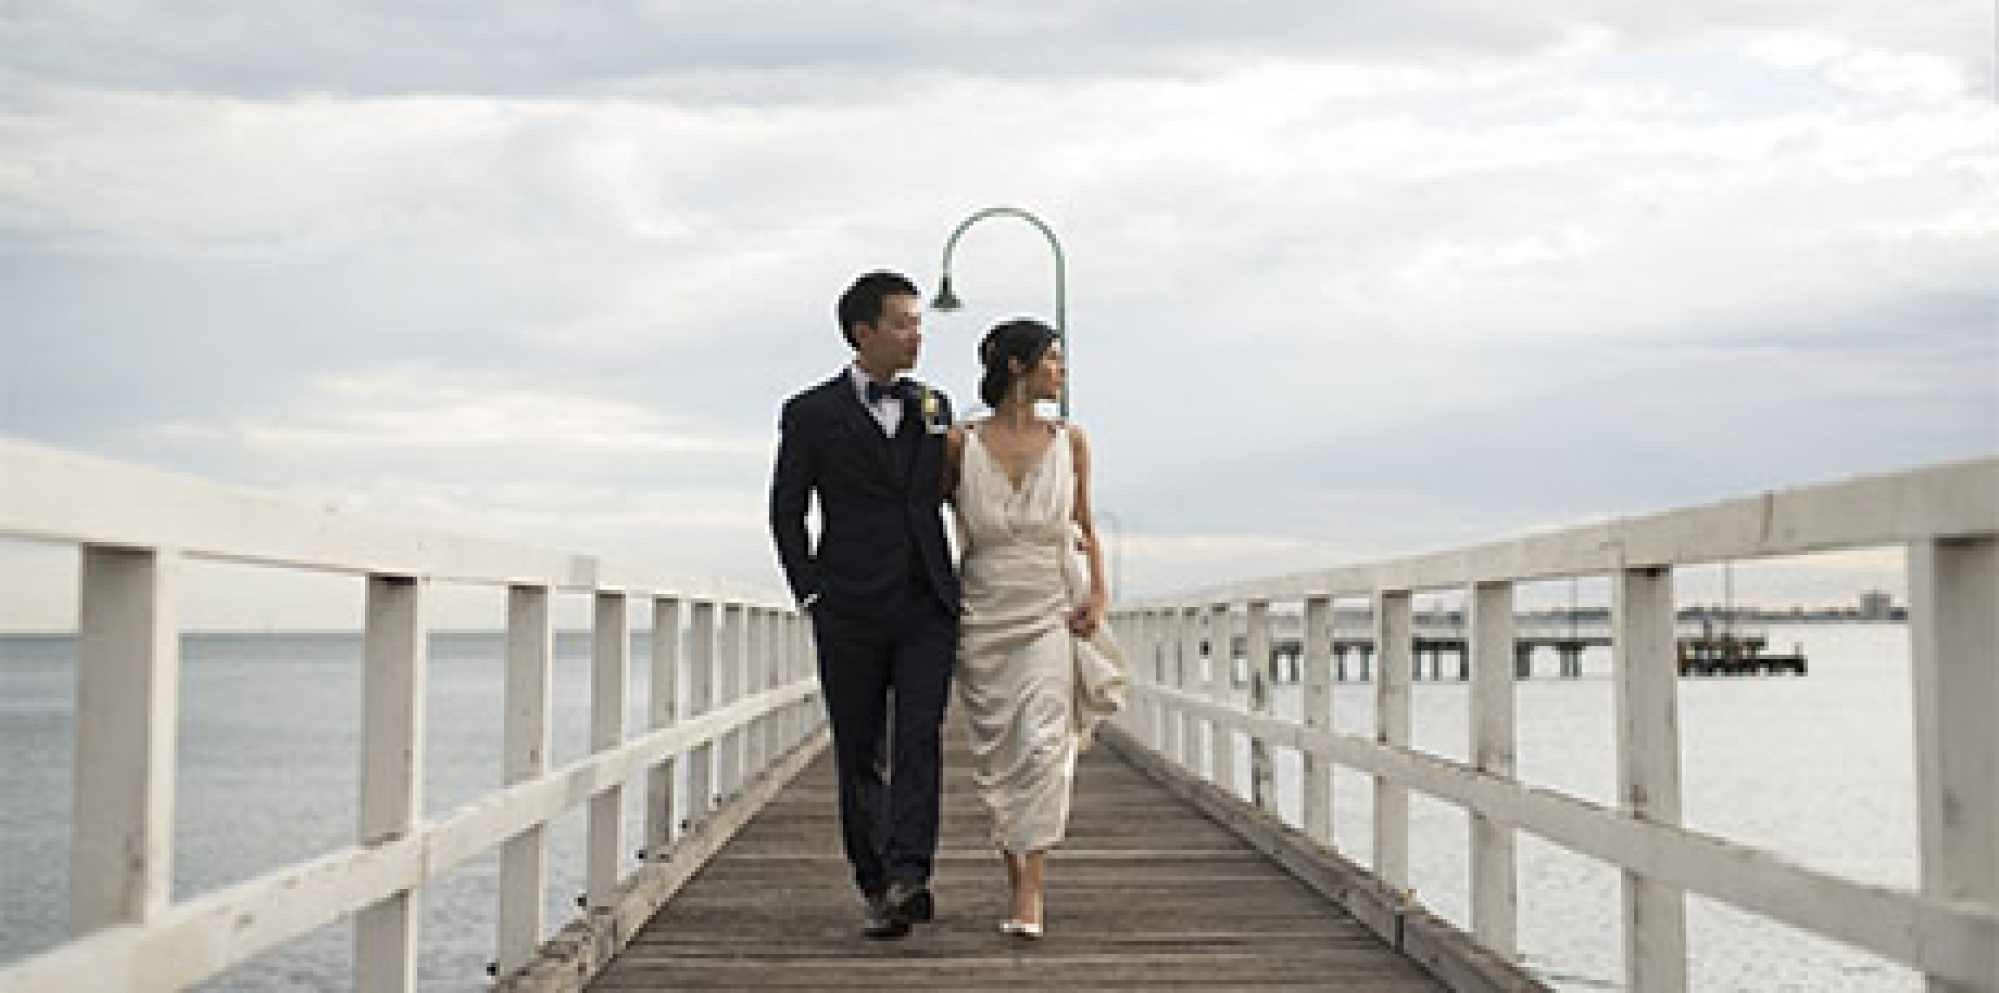 Xuan & calvin | river edge events wedding video